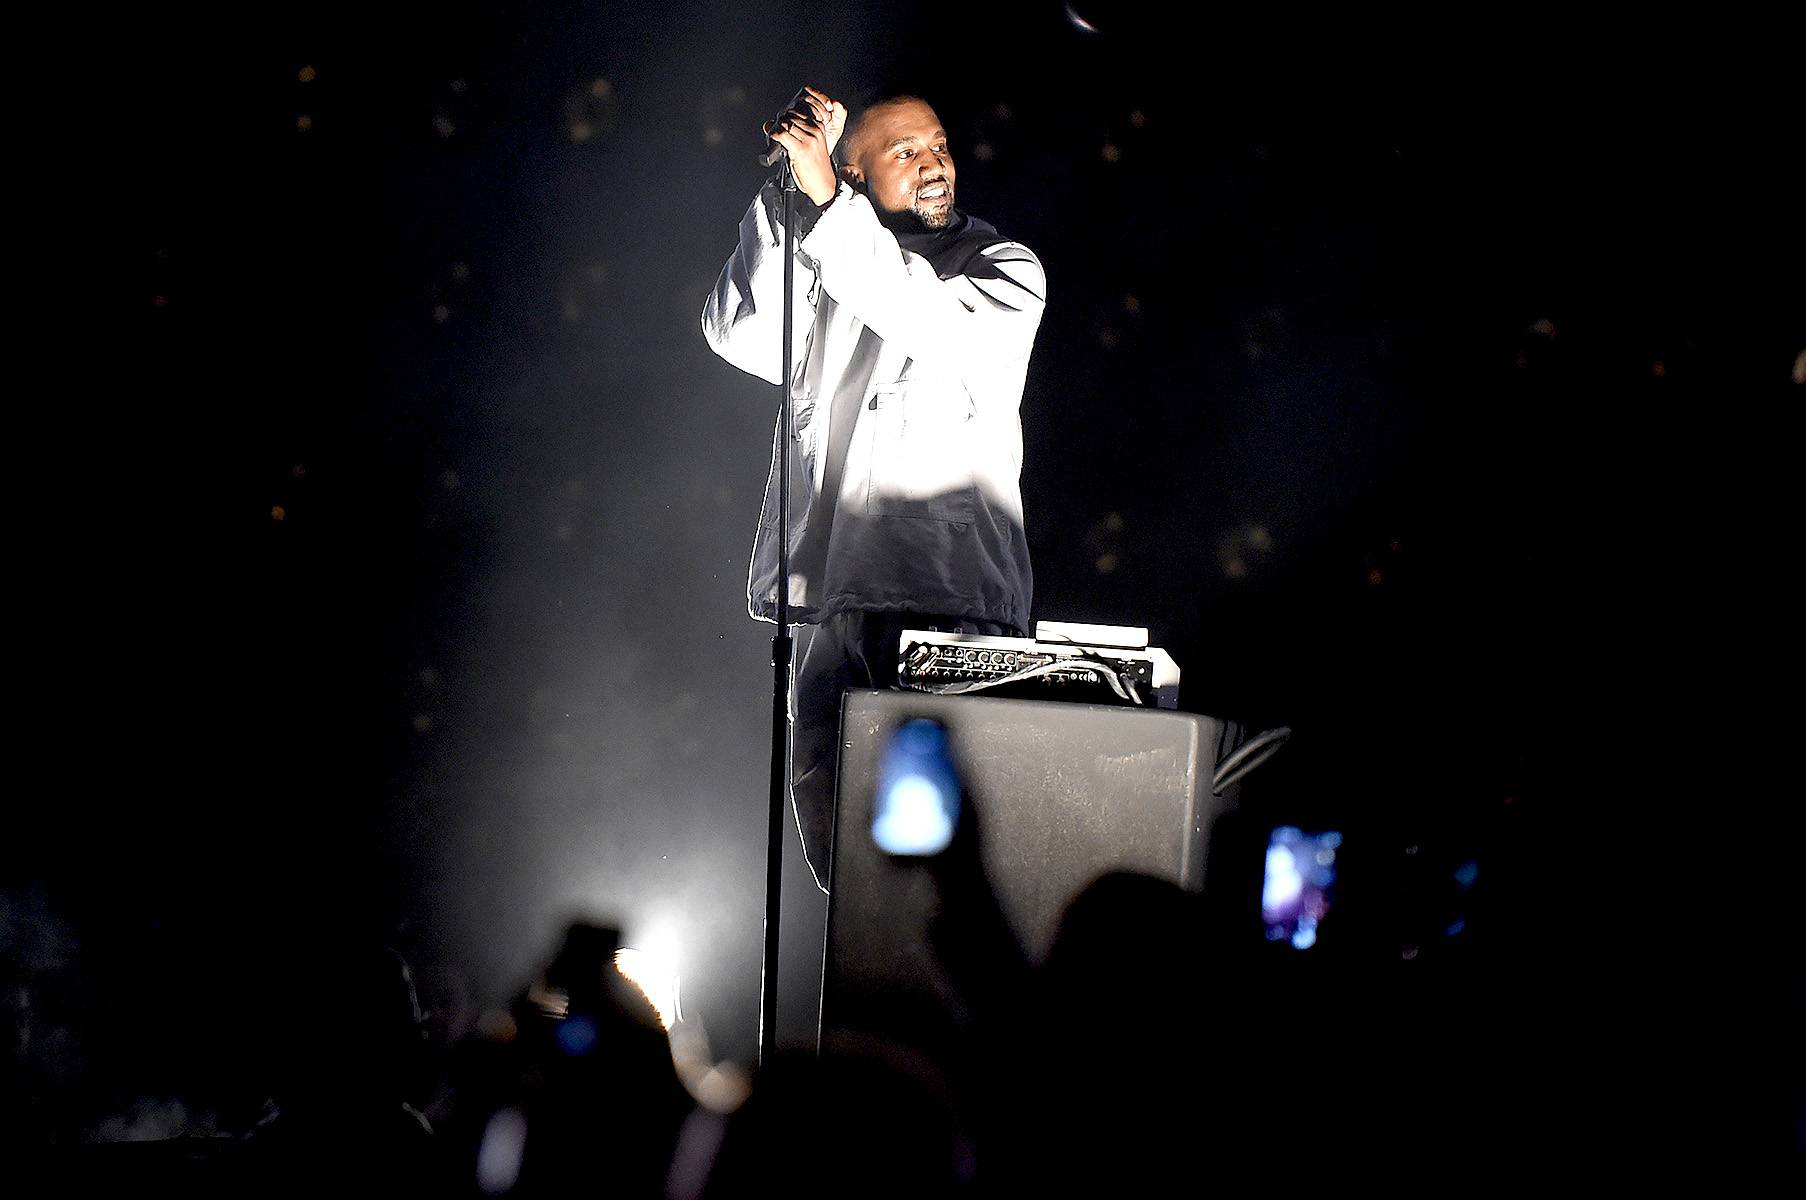 """Kanye West - We all remember Ye's """"Through the Wire"""" video that showed footage of Jay Z bringing on the stage with the rest of the Roc to announce his induction as the newest member of the team. After that things were never the same.  (Photo: Kevin Winter/Getty Images For 102.7 KIIS FM's Wango Tango)"""